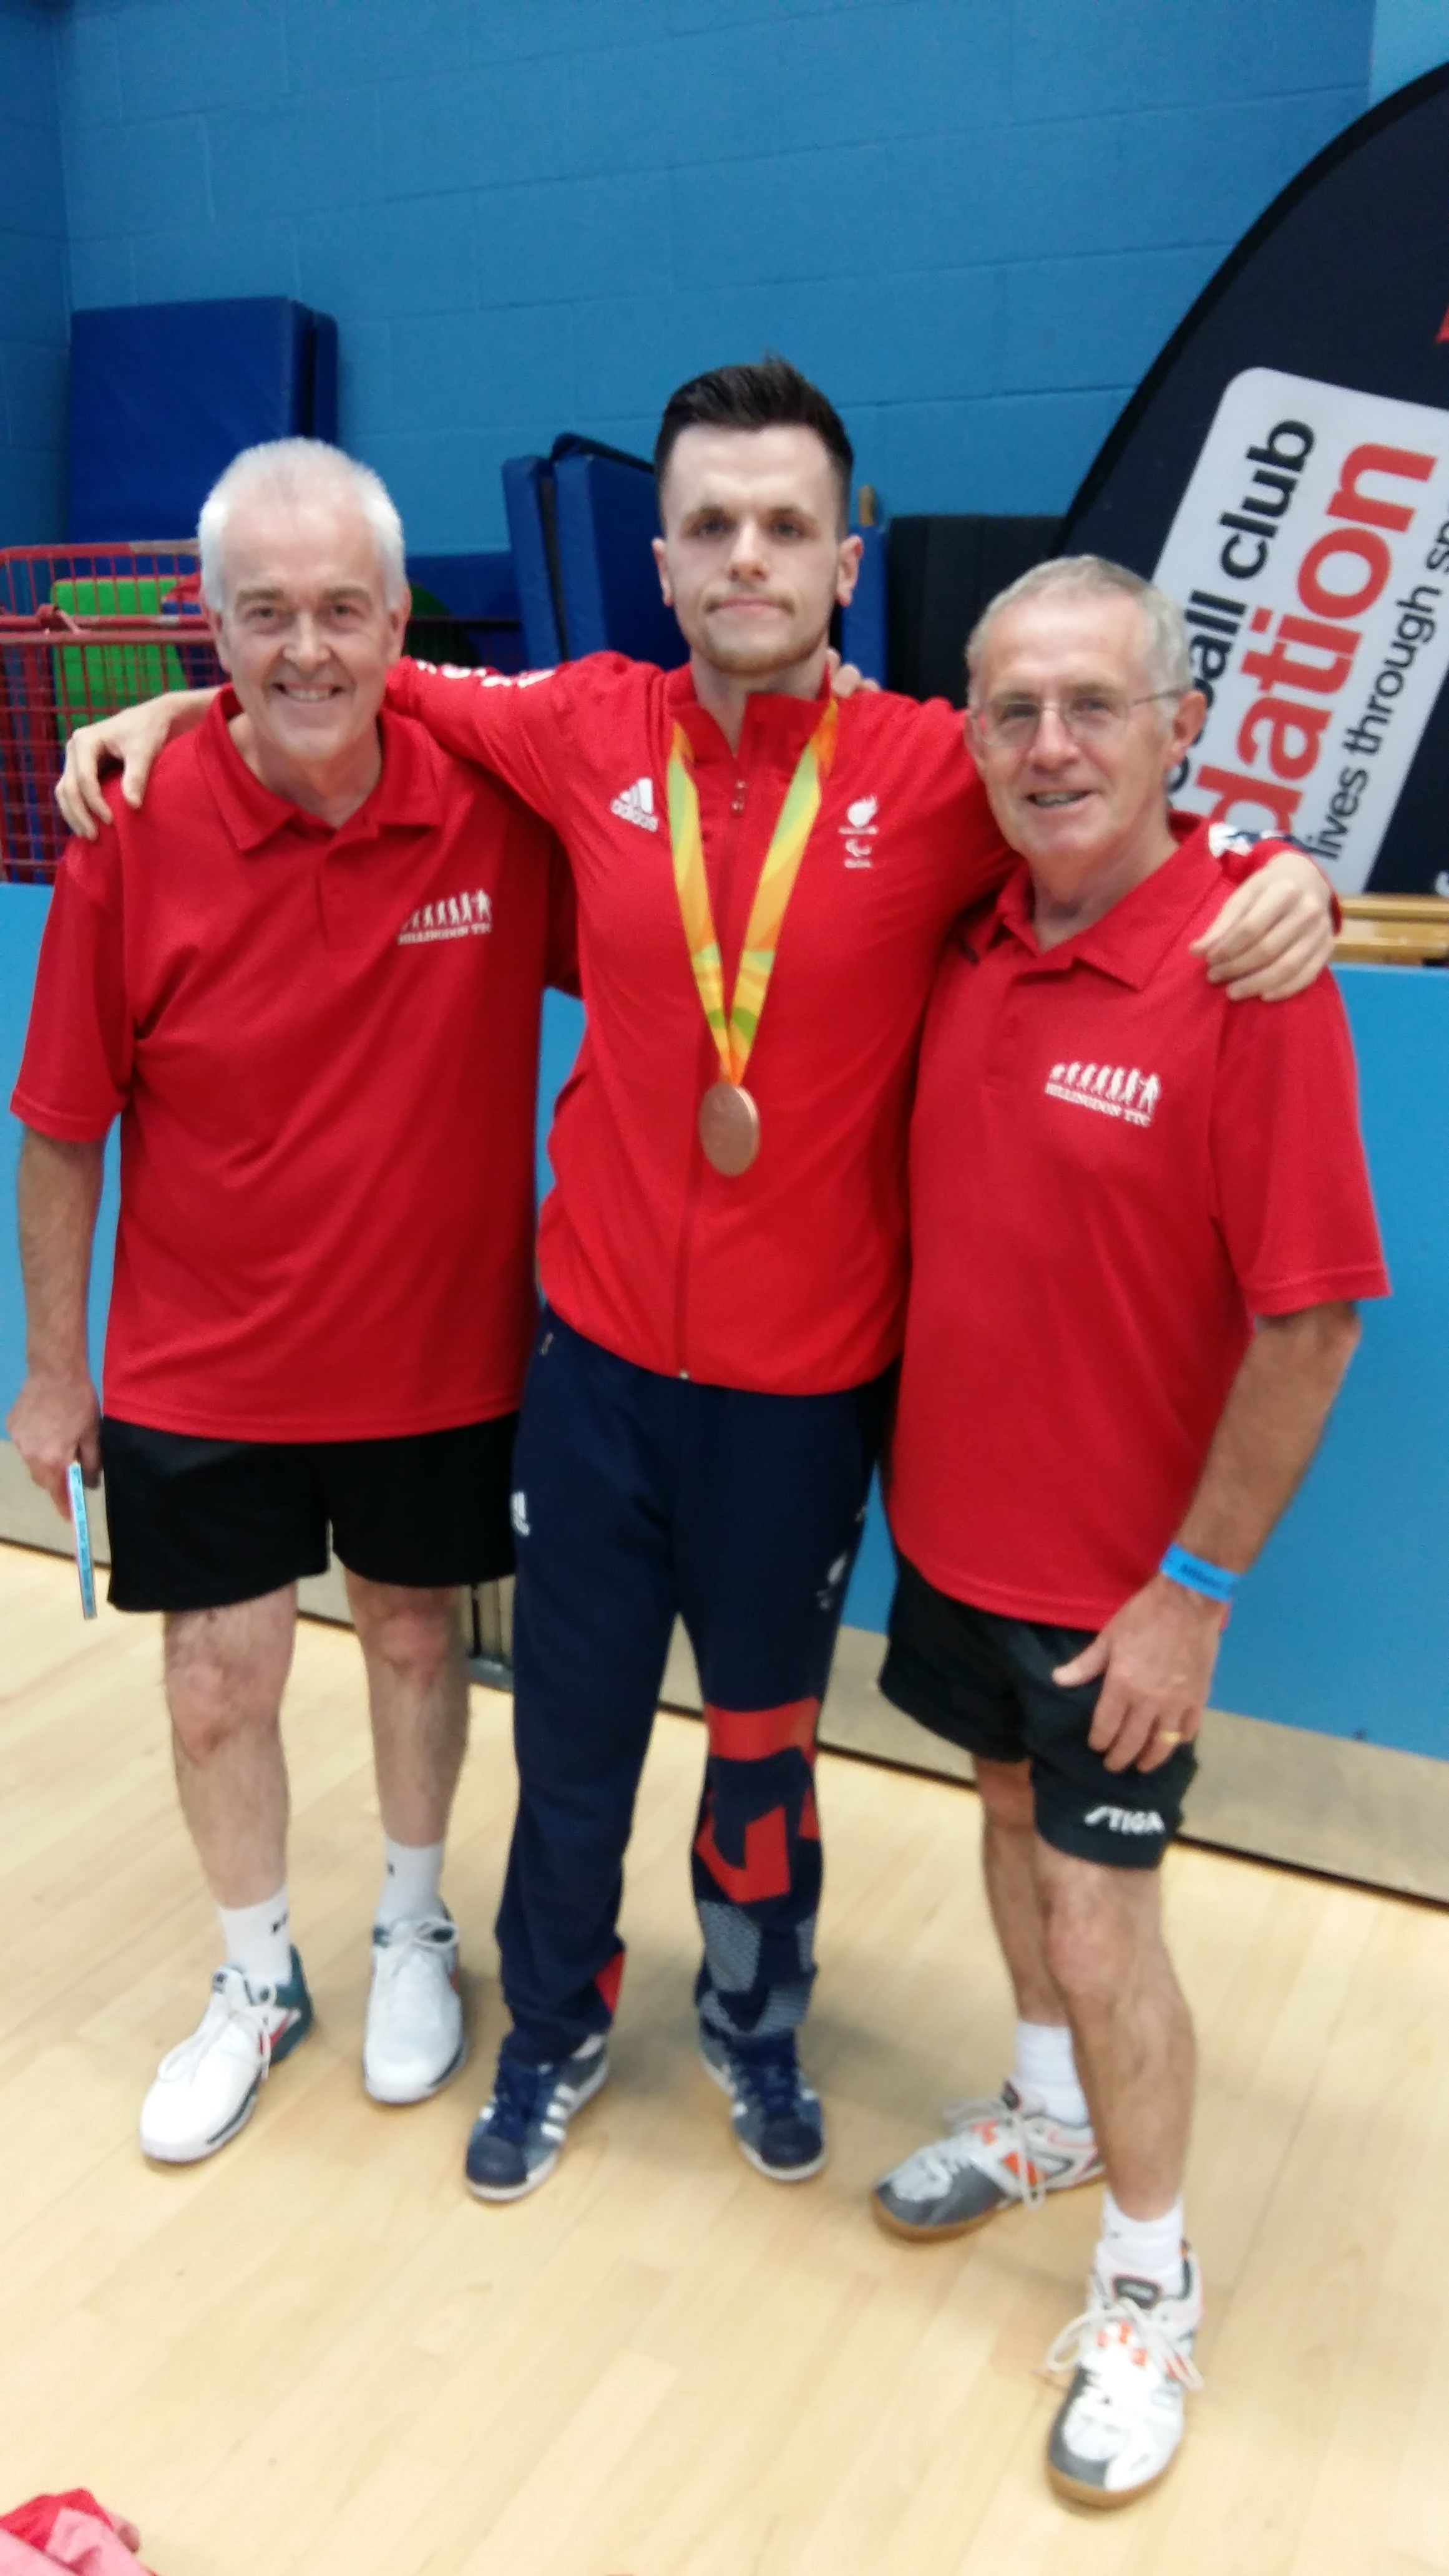 Ron and George with Aaron McKibbin - A member of the British team that won the bronze medal